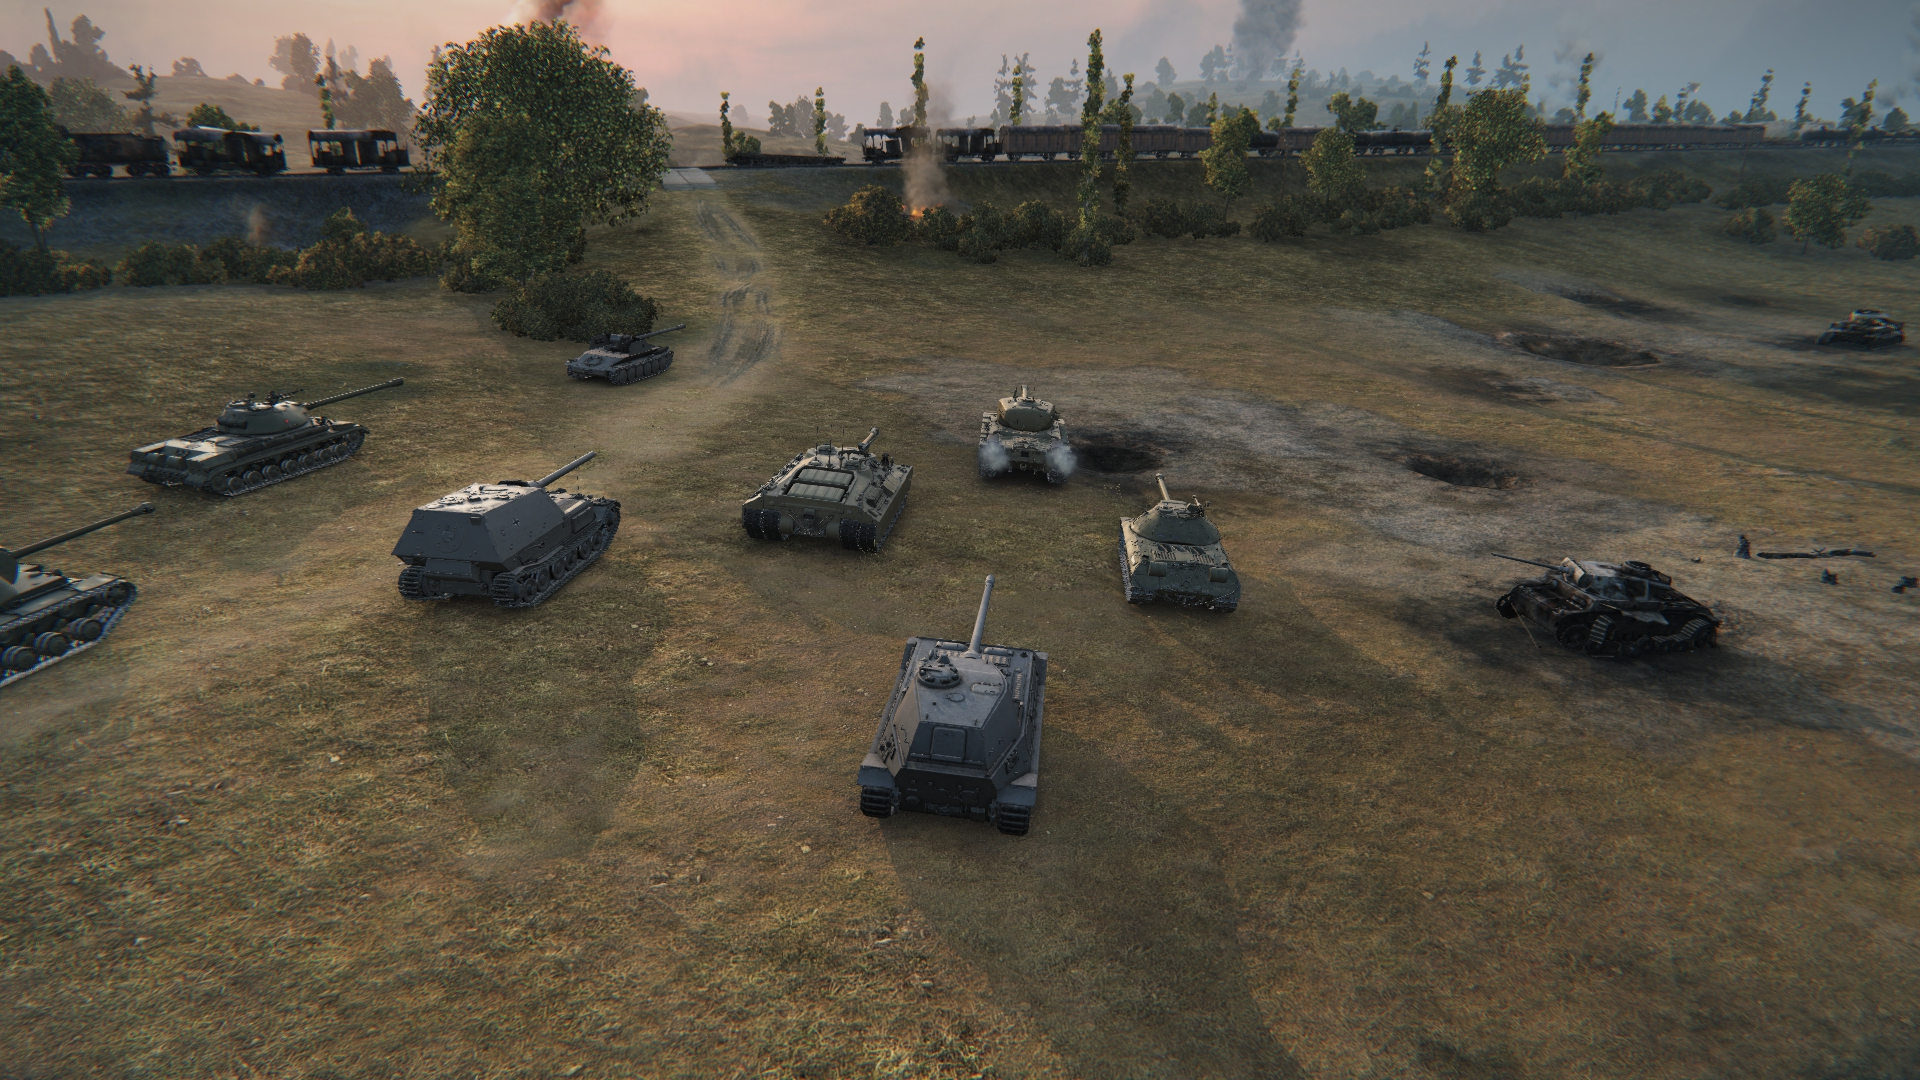 shot_004.jpg - World of Tanks